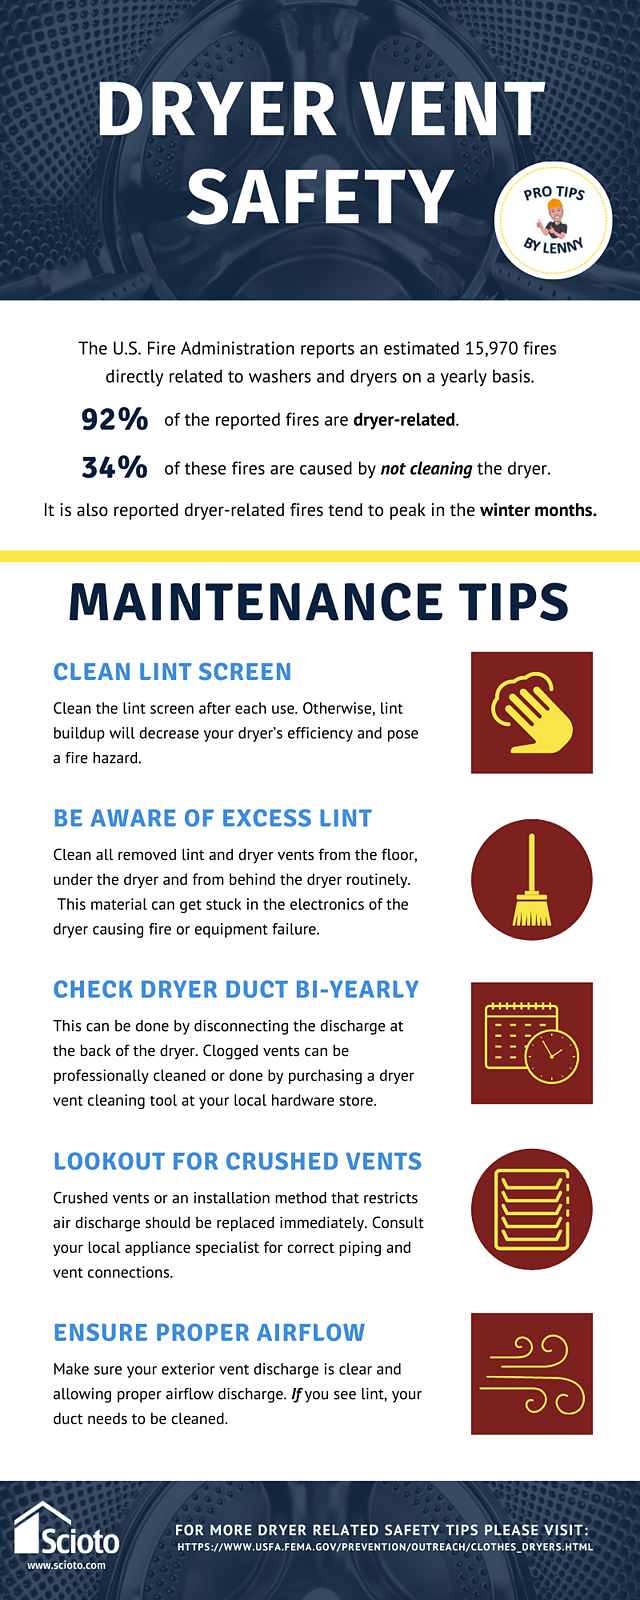 Dryer Vent Safety Infographic - Feb 2021